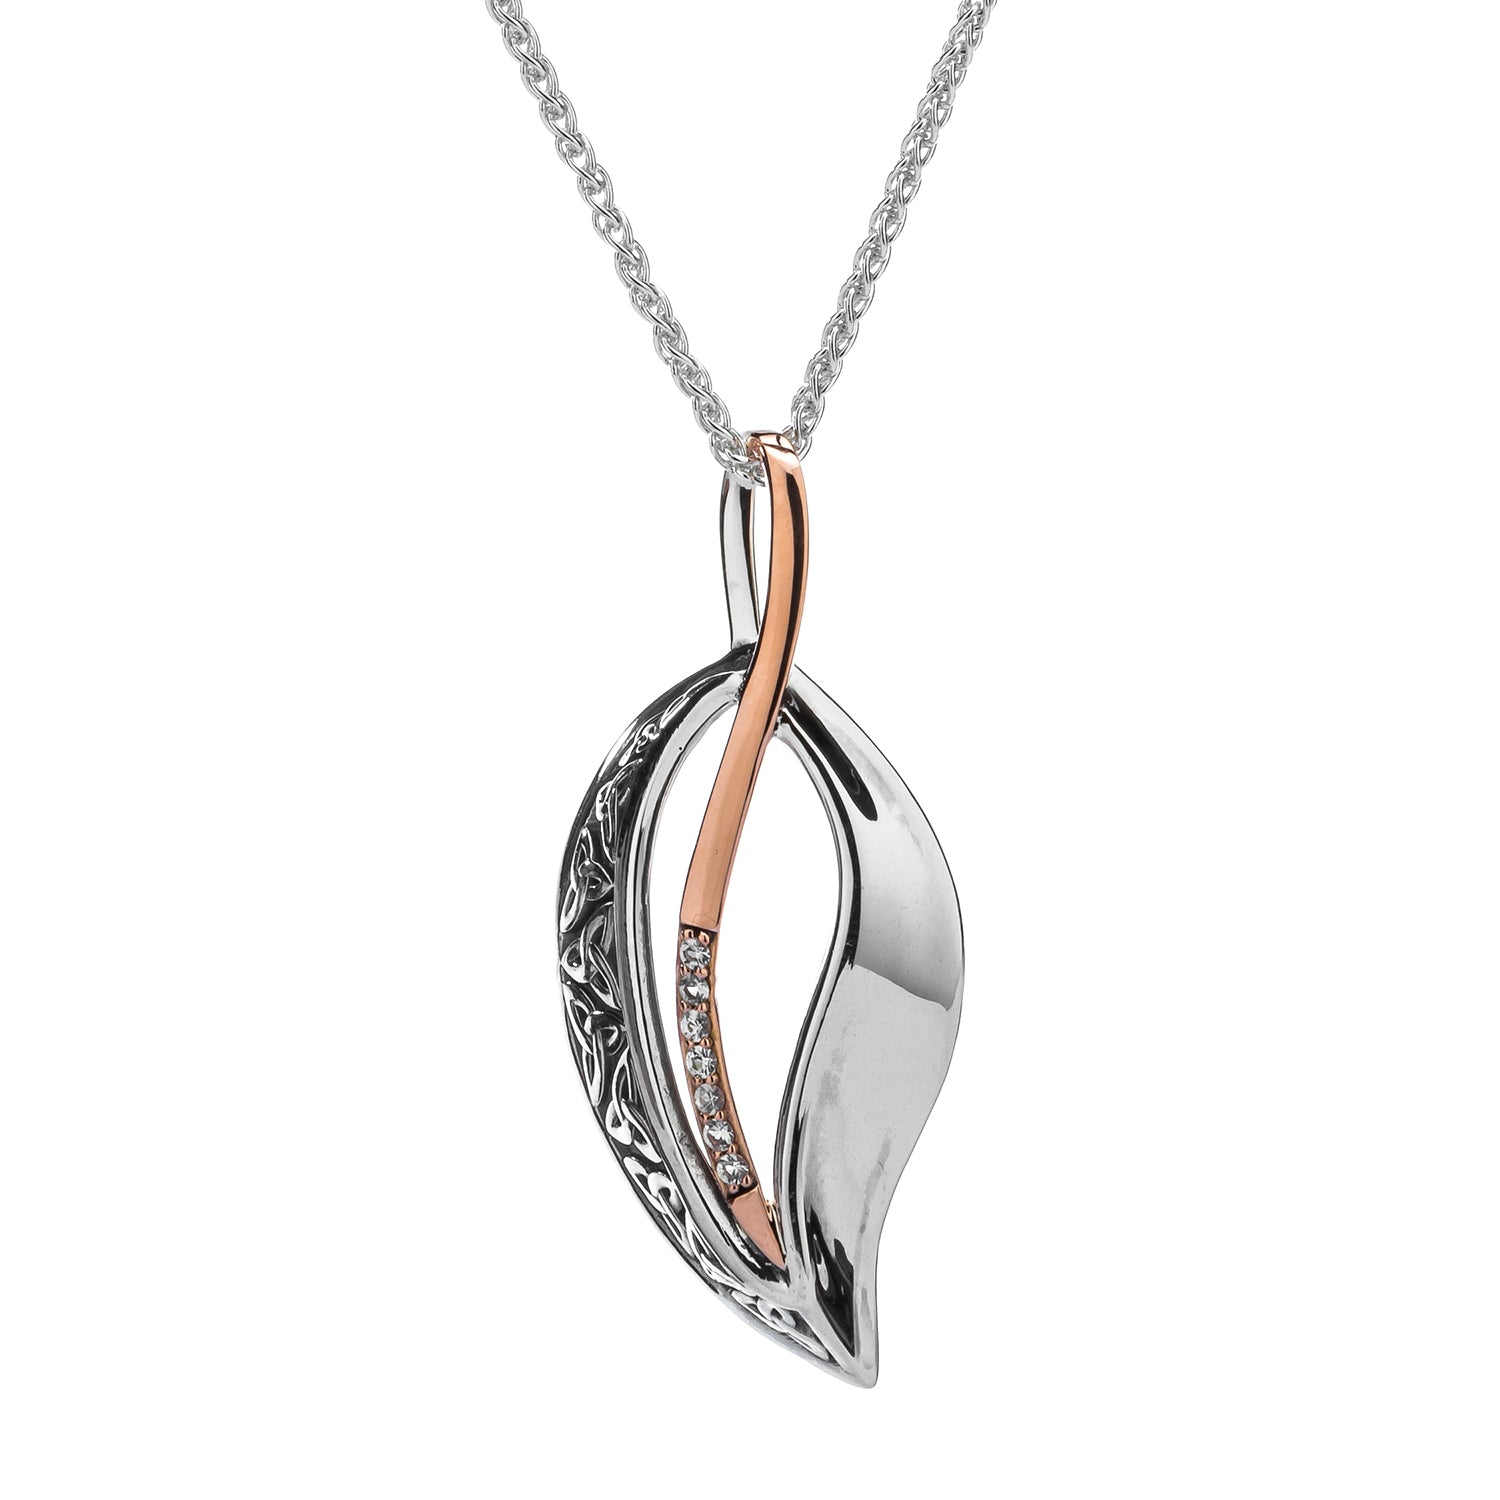 Pendant Oxidized 10k Rose White Sapphire Trinity Leaf Pendant from welch and company jewelers near syracuse ny